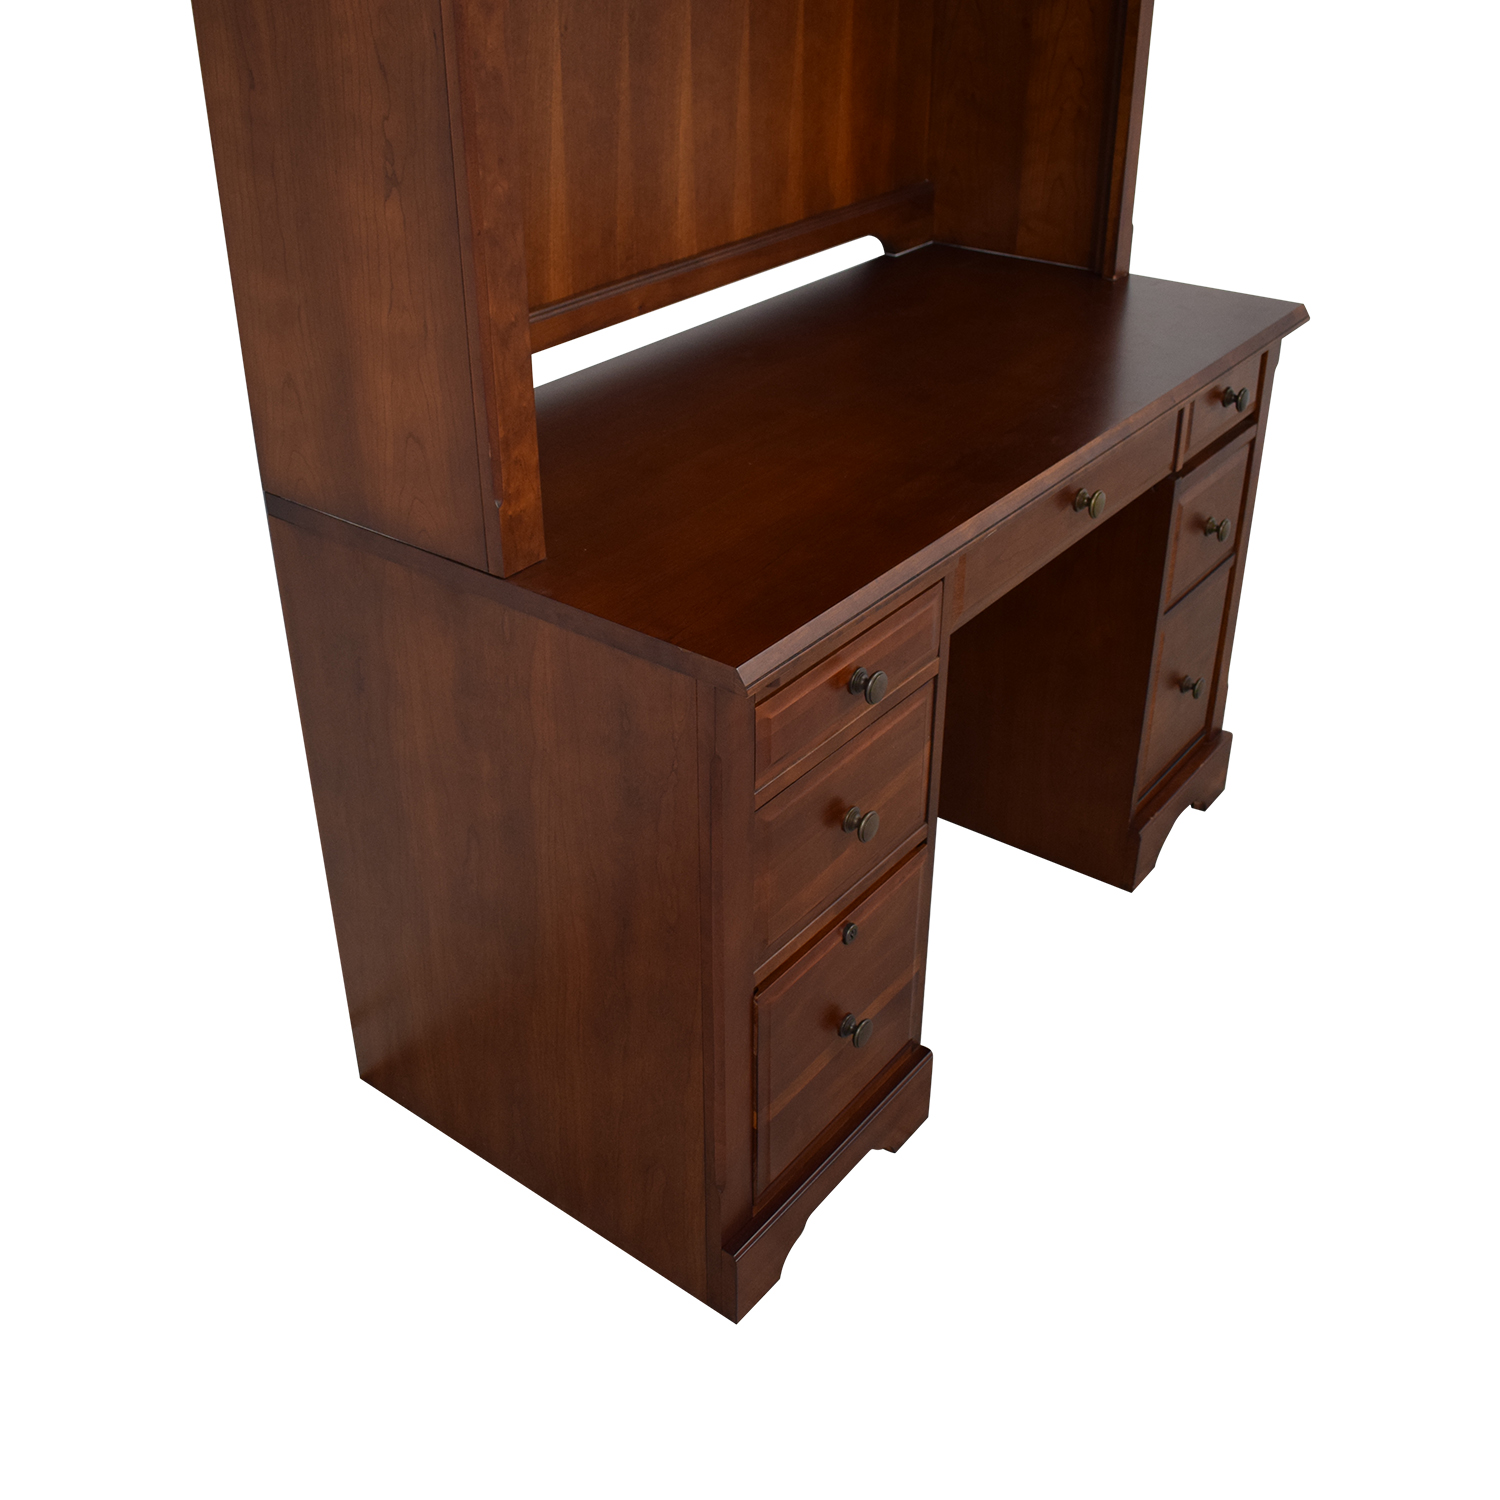 Wood Desk with Hutch dimensions